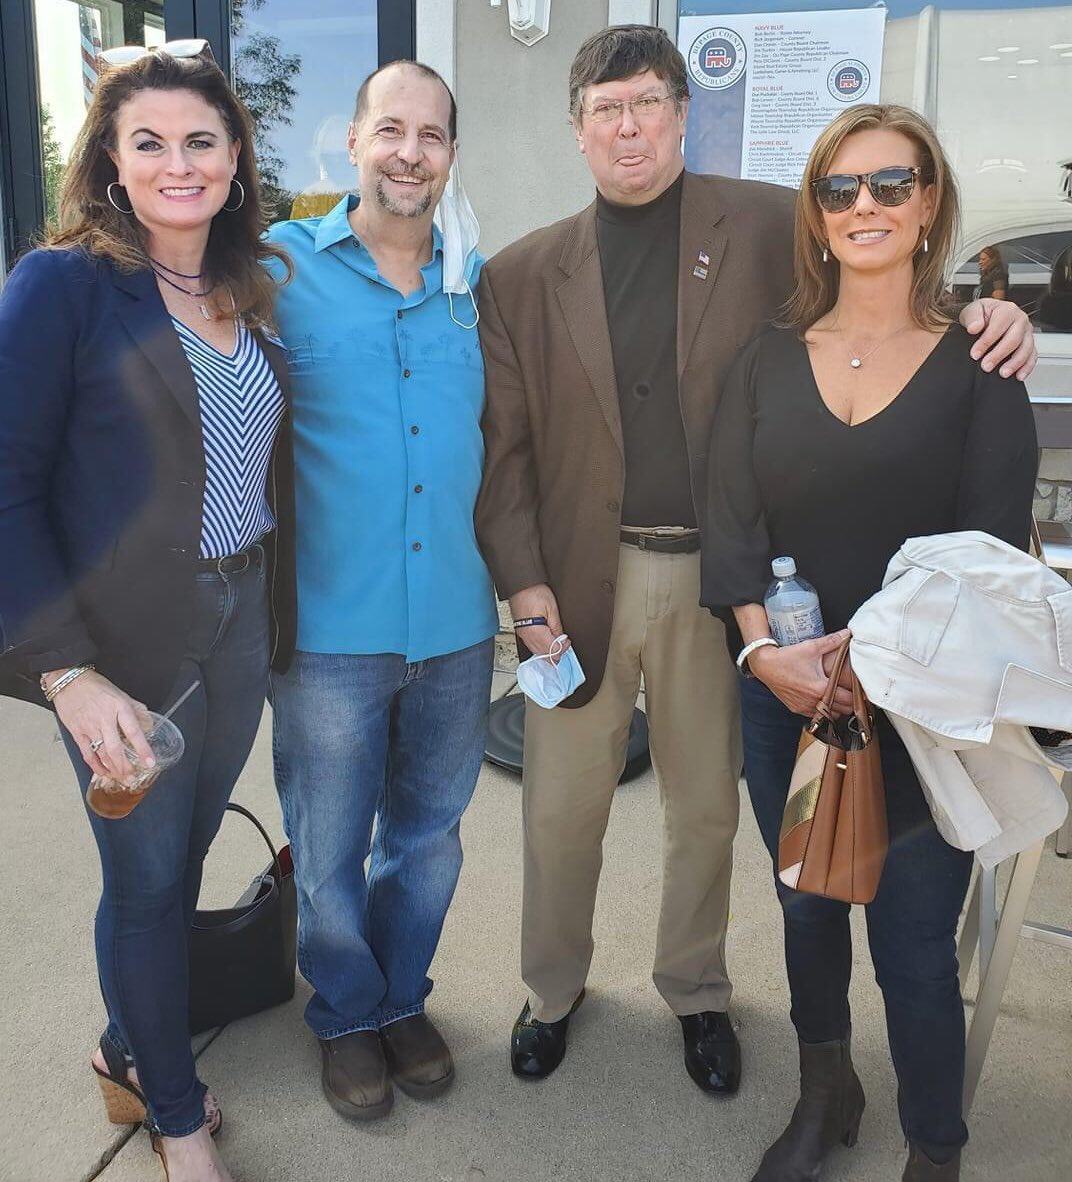 Great to see Laura Curtis, @DuKaneABATE Legislative Coordinator @RameyforIL, and @JudgeACWalsh out at the @DuPageCountyGOP #LawEnforcement Support Rally today. Only wish I could've joined them! Laura is endorsed by A.B.A.T.E. of Illinois. #twill #Illinois #ABATEofIllinois 🇺🇸 https://t.co/Ca9SRjb2KP